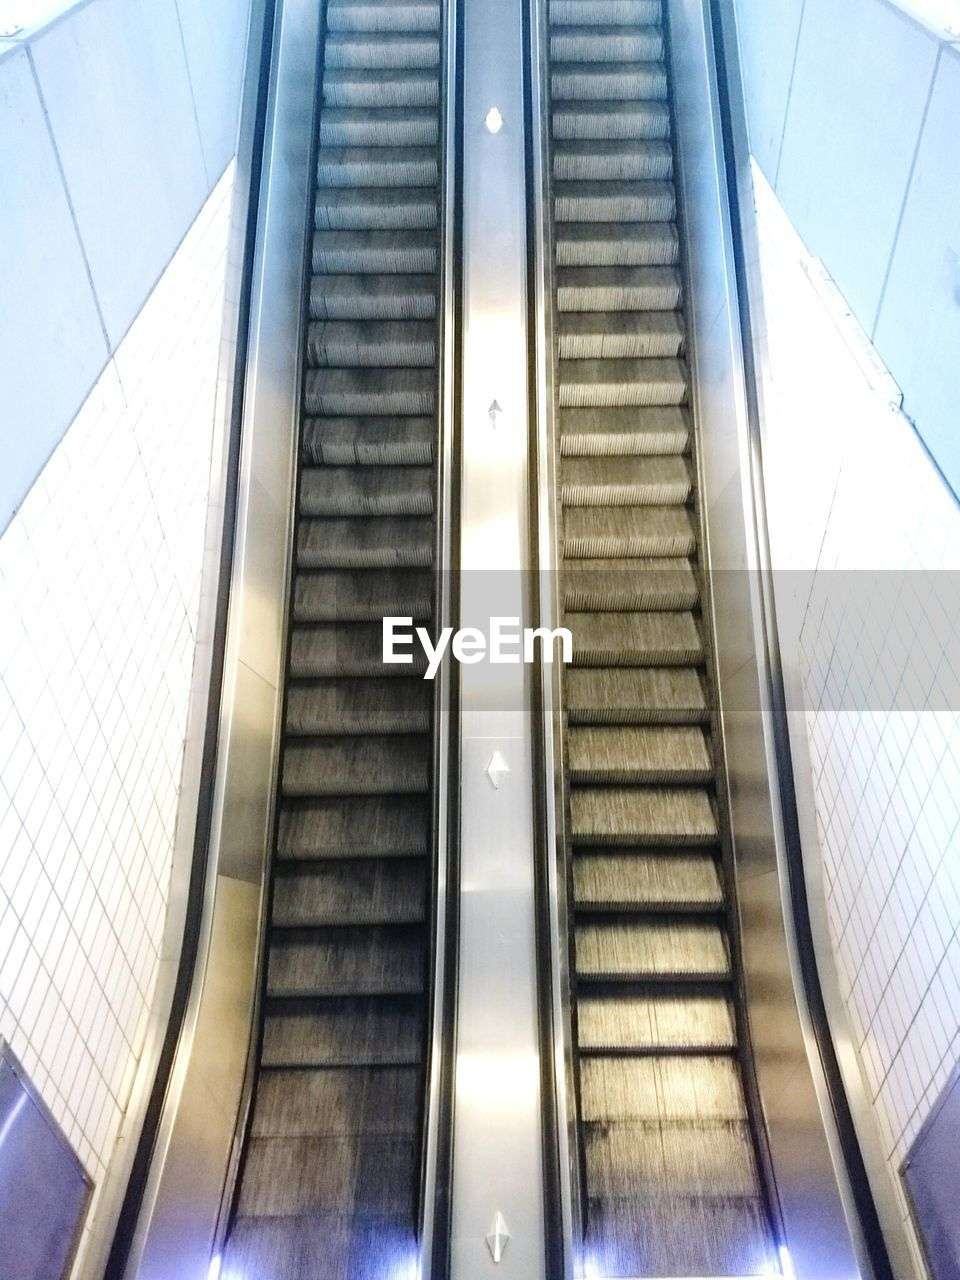 indoors, staircase, steps, steps and staircases, escalator, modern, convenience, railing, futuristic, technology, architecture, built structure, high angle view, transportation, subway station, the way forward, no people, day